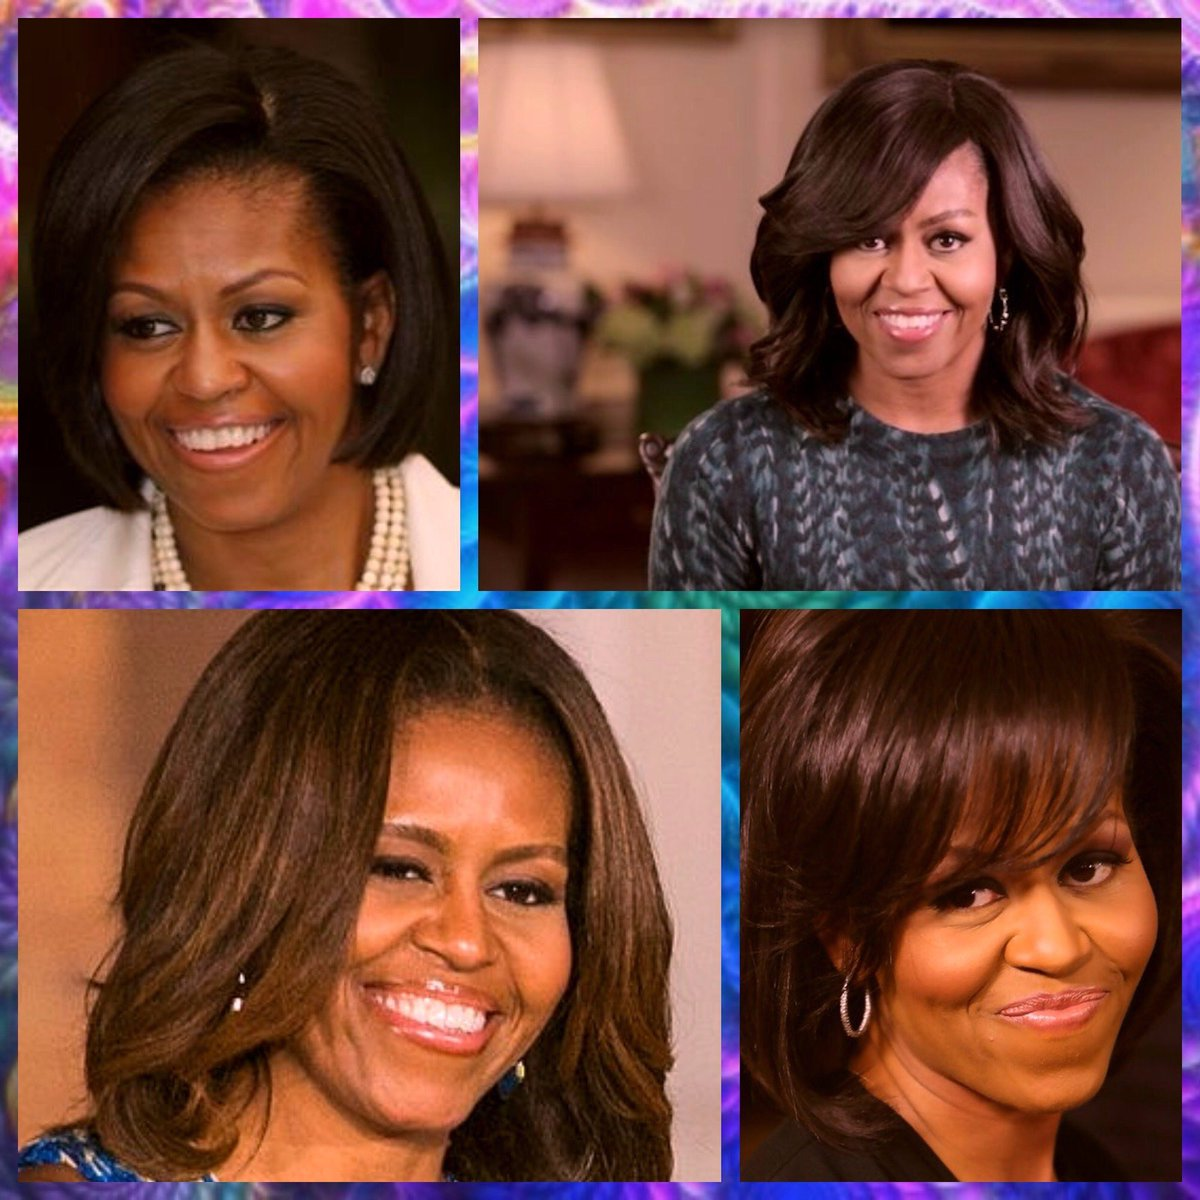 No other #FirstLady has been more outspoken and inspiring than #MichelleObama. She is #TheFuture of the #GlassCeiling.<br>http://pic.twitter.com/7u1NZq7Px8